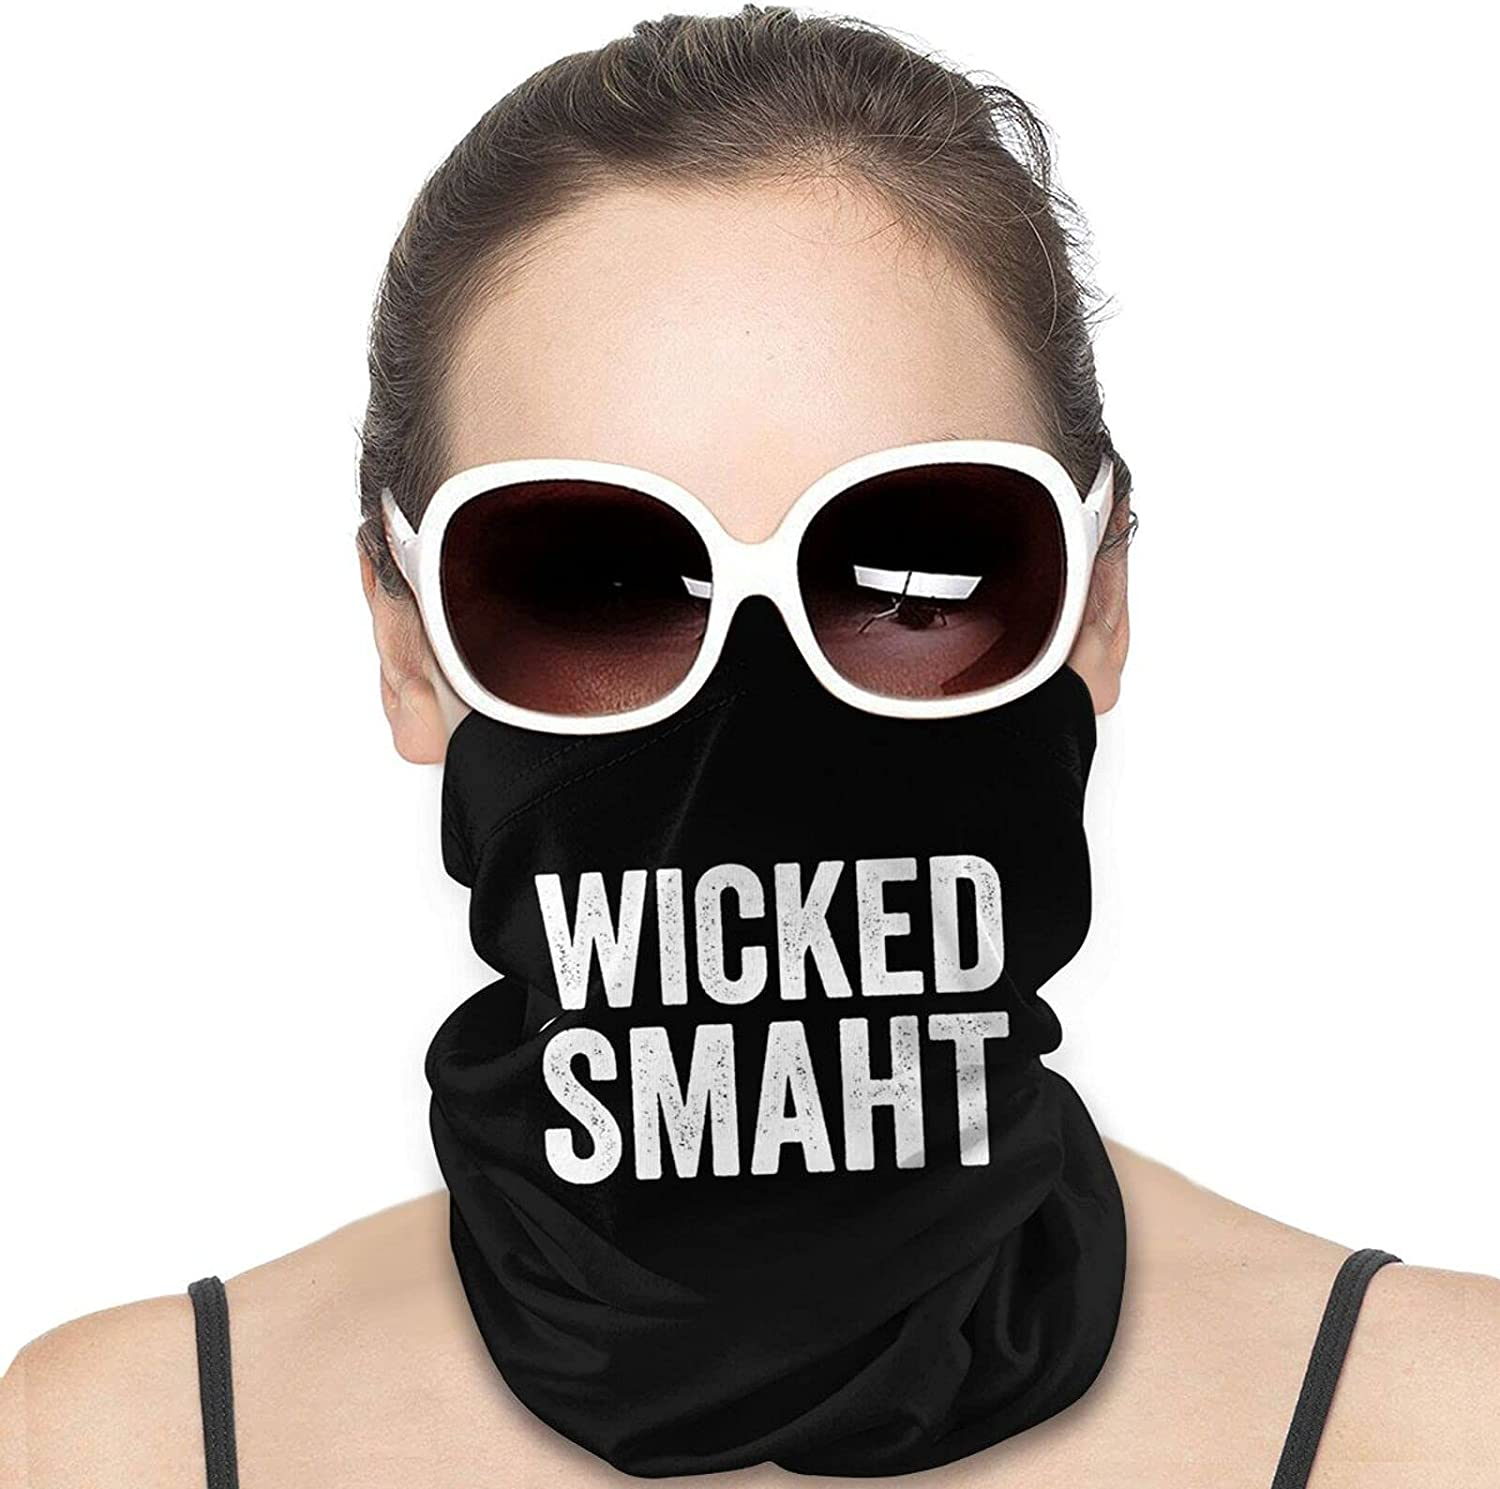 Wicked Smaht Round Neck Gaiter Bandnas Face Cover Uv Protection Prevent bask in Ice Scarf Headbands Perfect for Motorcycle Cycling Running Festival Raves Outdoors